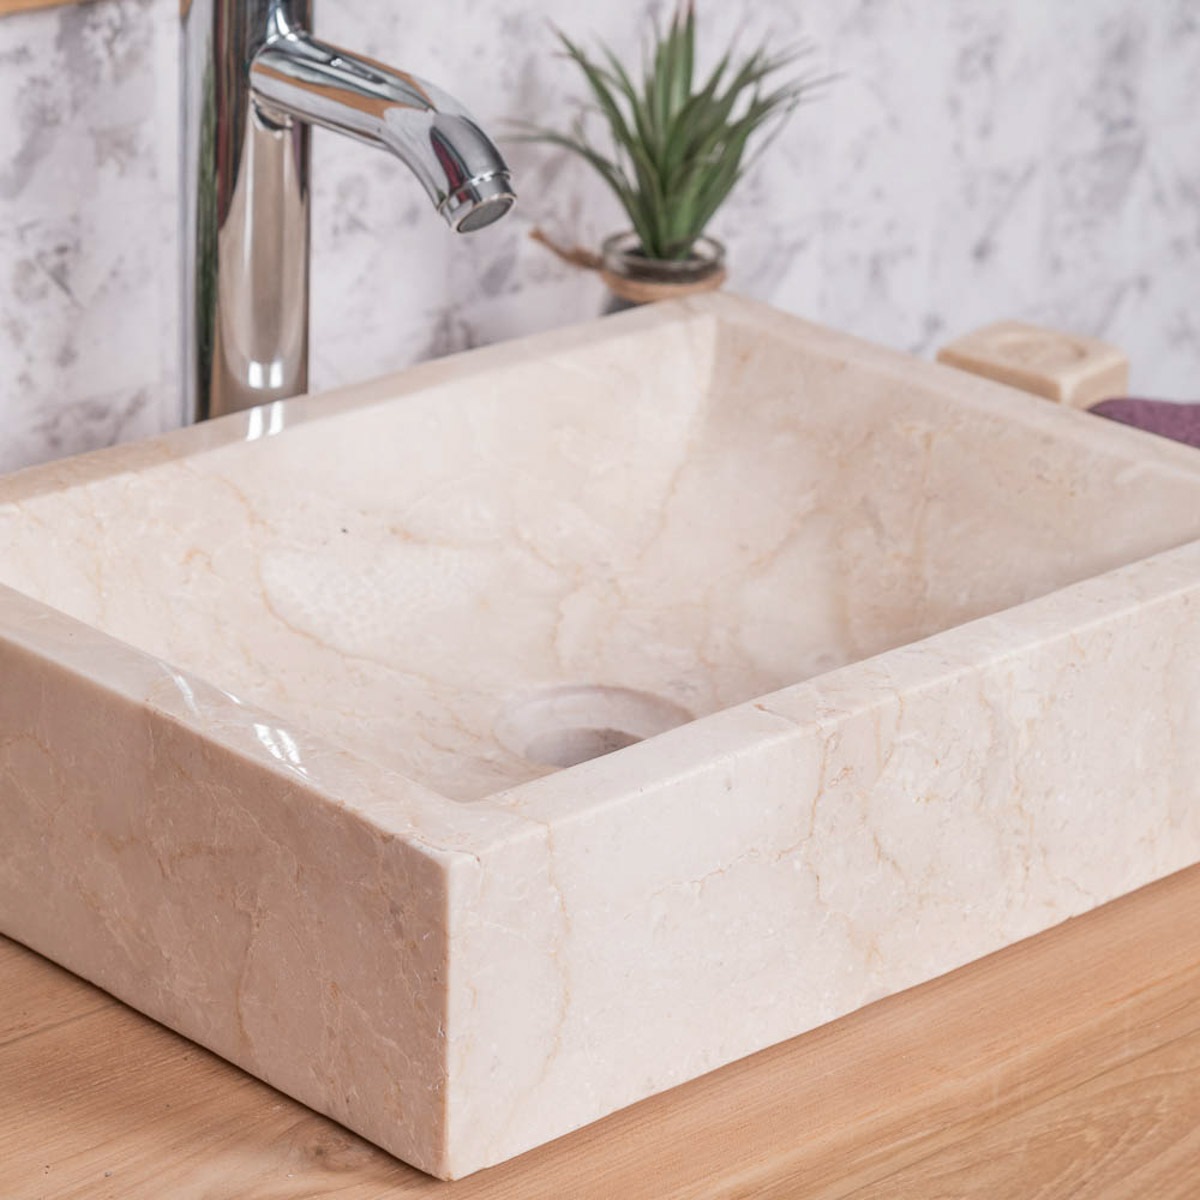 Vasque poser marbre rectangle cr me alexandrie l 40 x p 30 x h 10 cm - Vasque salle de bain a poser ...